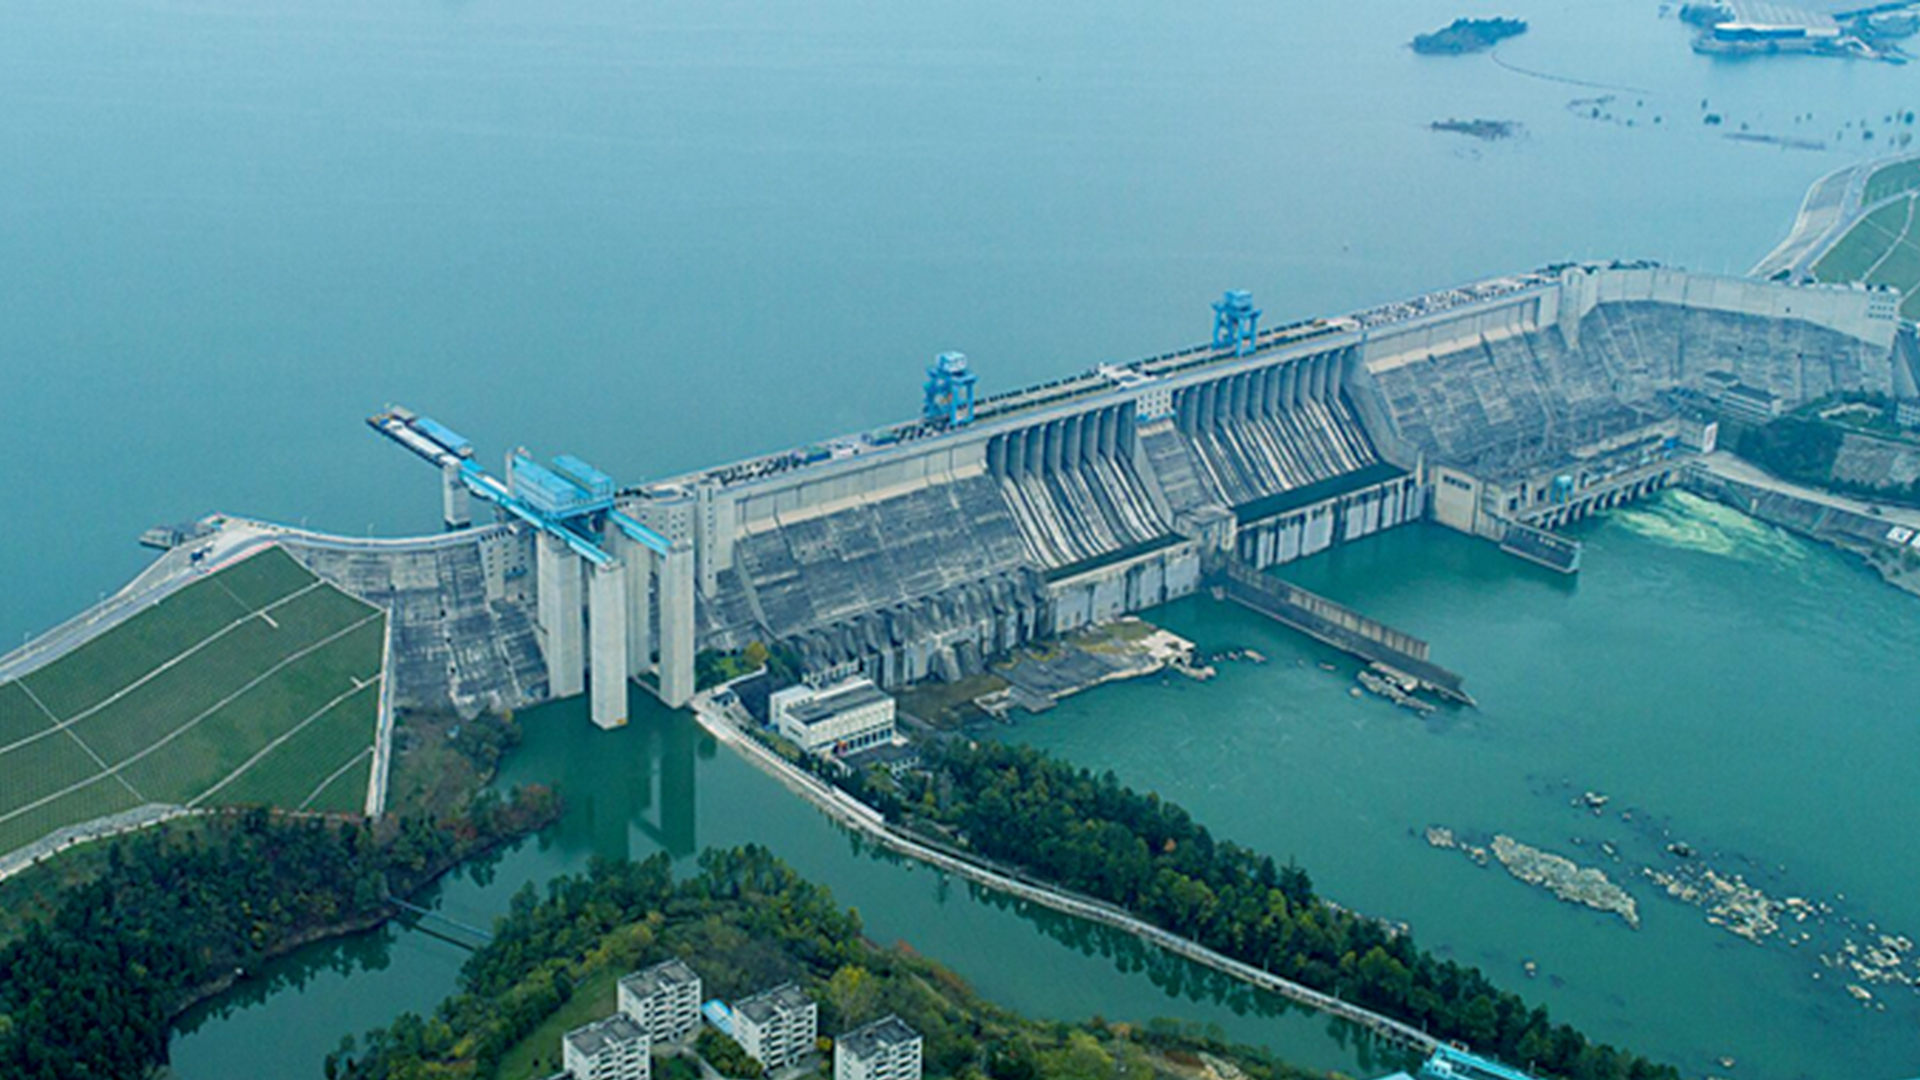 Major water bridge built for diversion project in east China